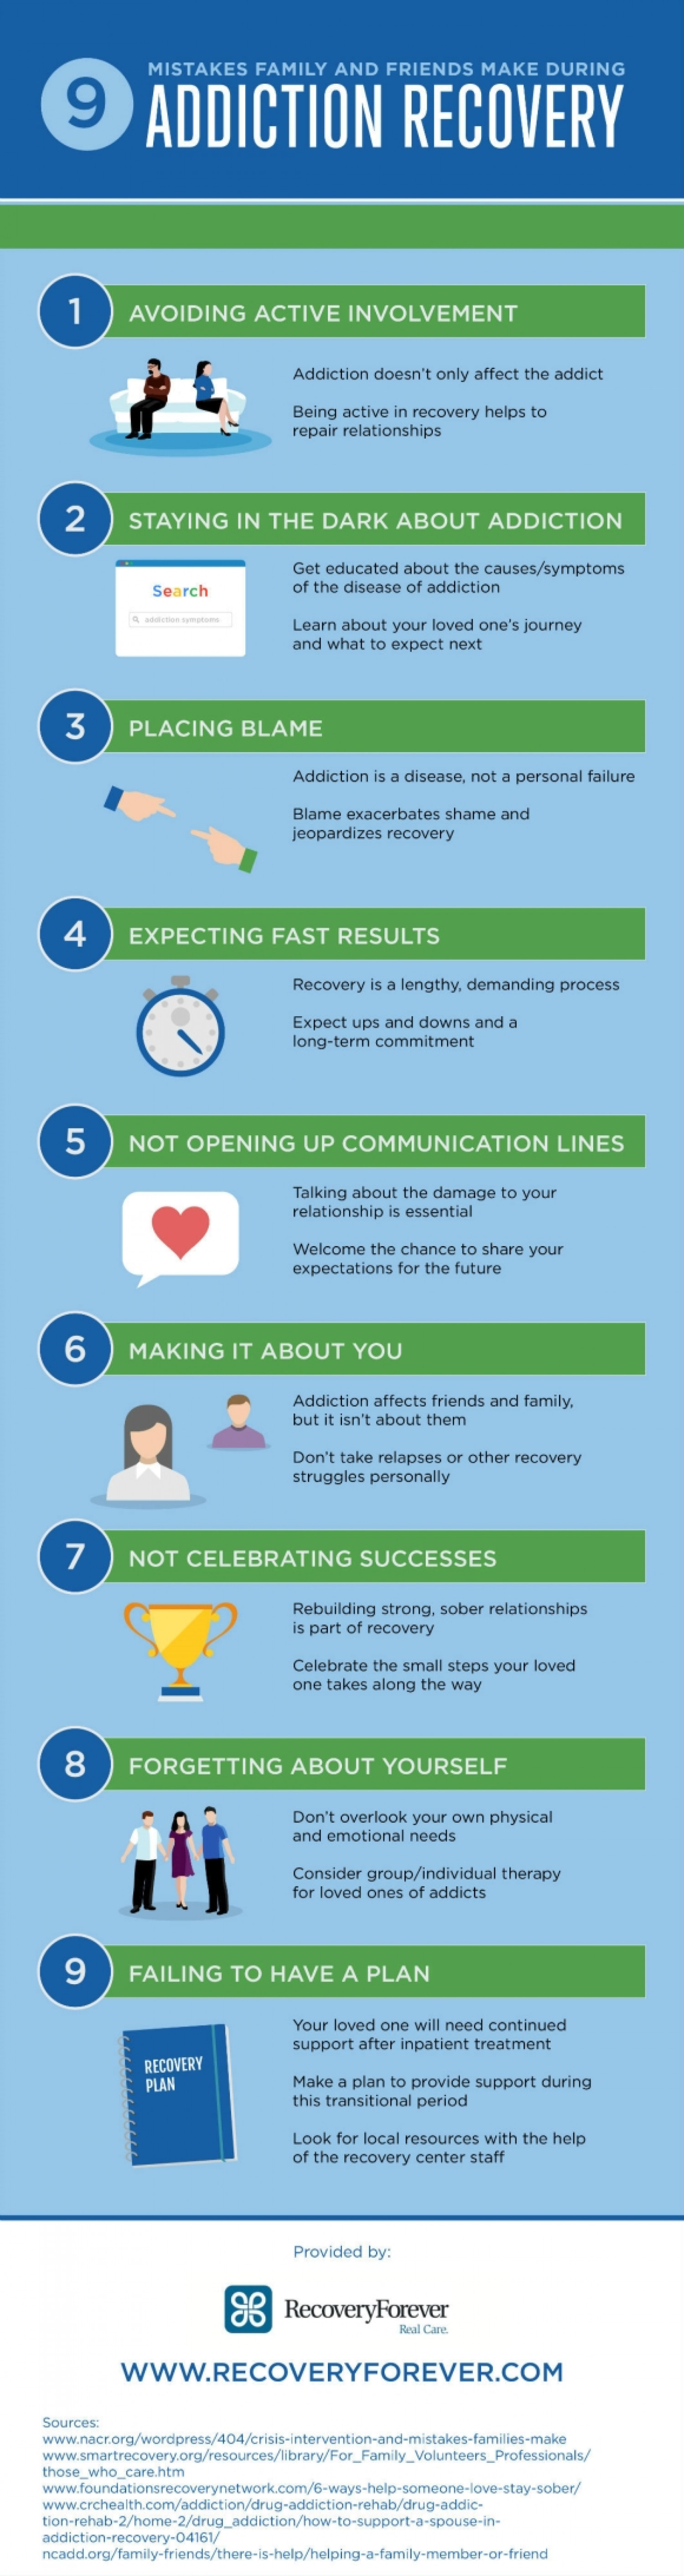 9 Mistakes Family and Friends Make During Addiction Recovery Infographic